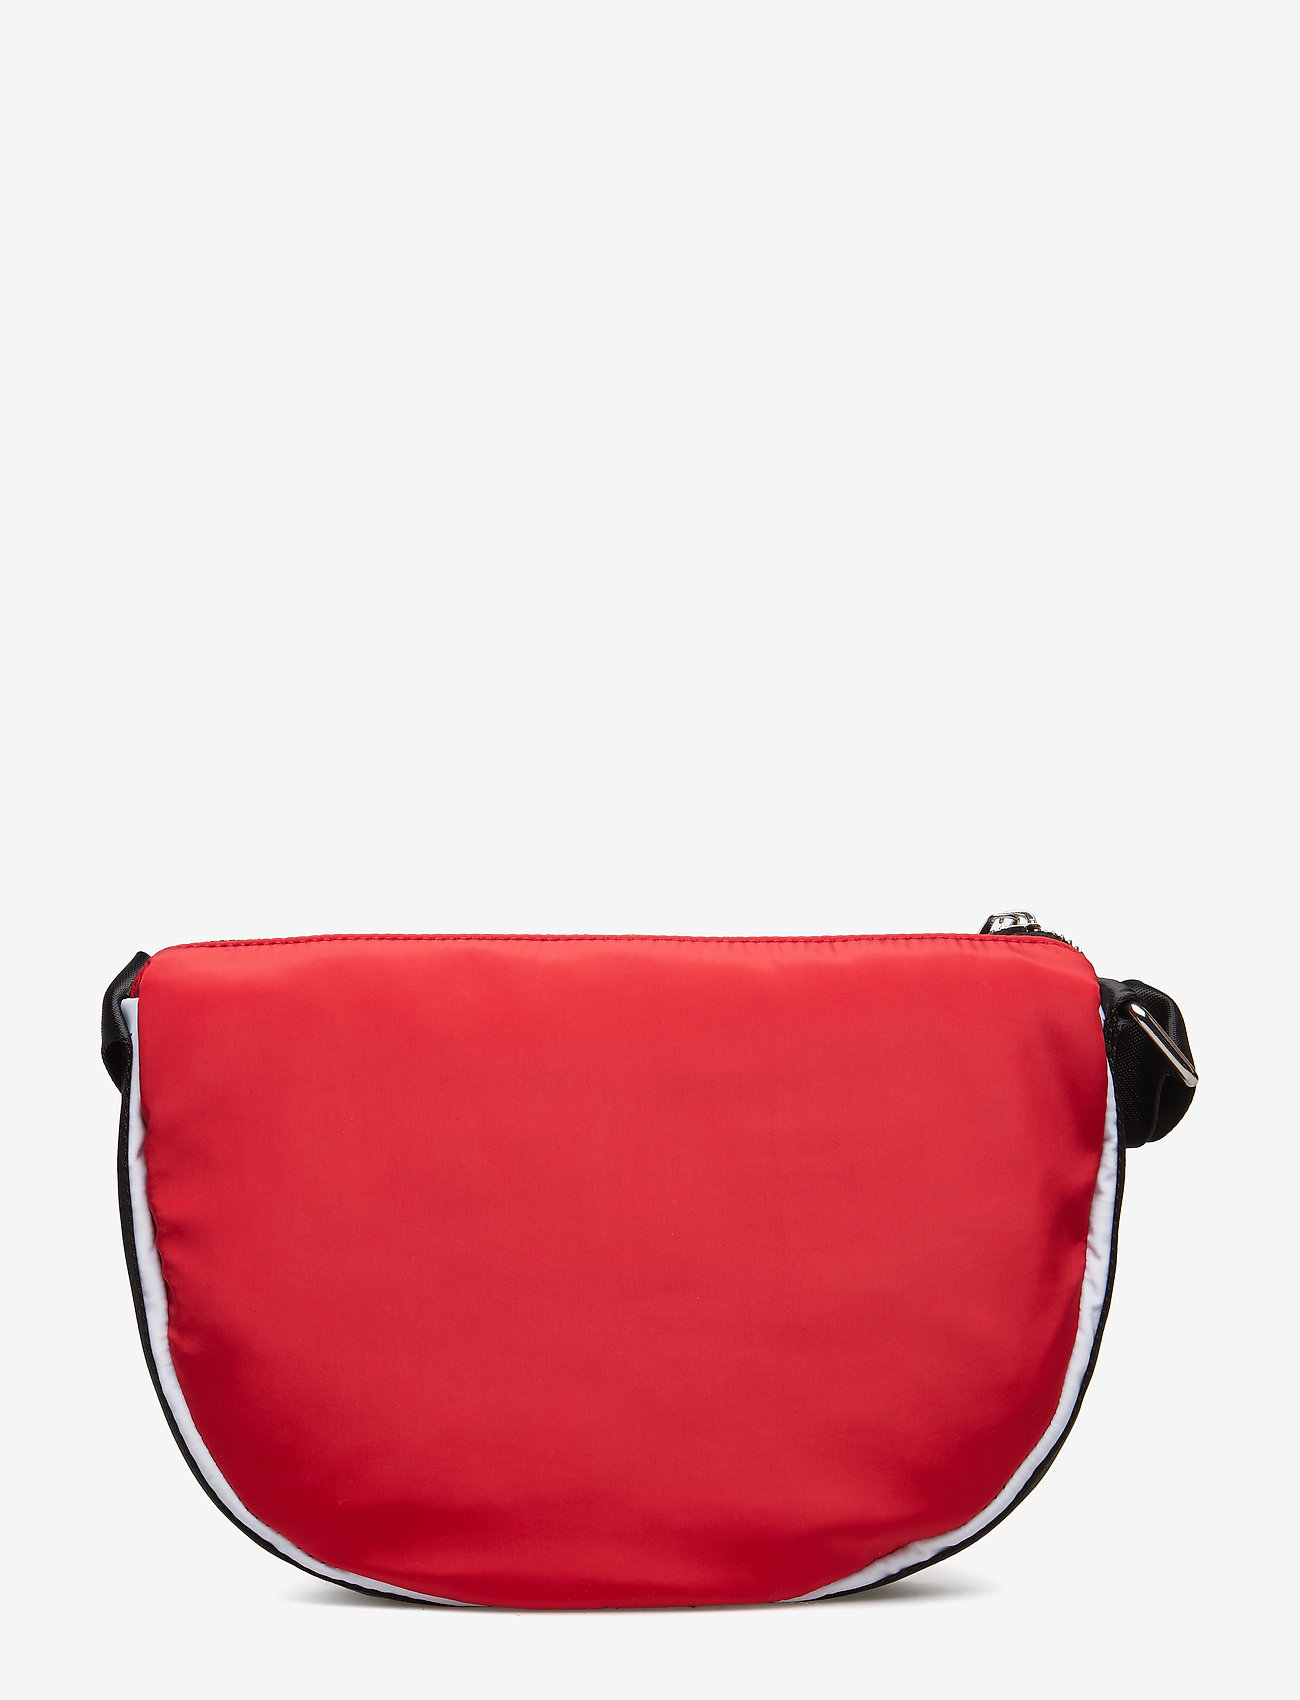 Replay - Bag - bum bags - blood red -black-optical white